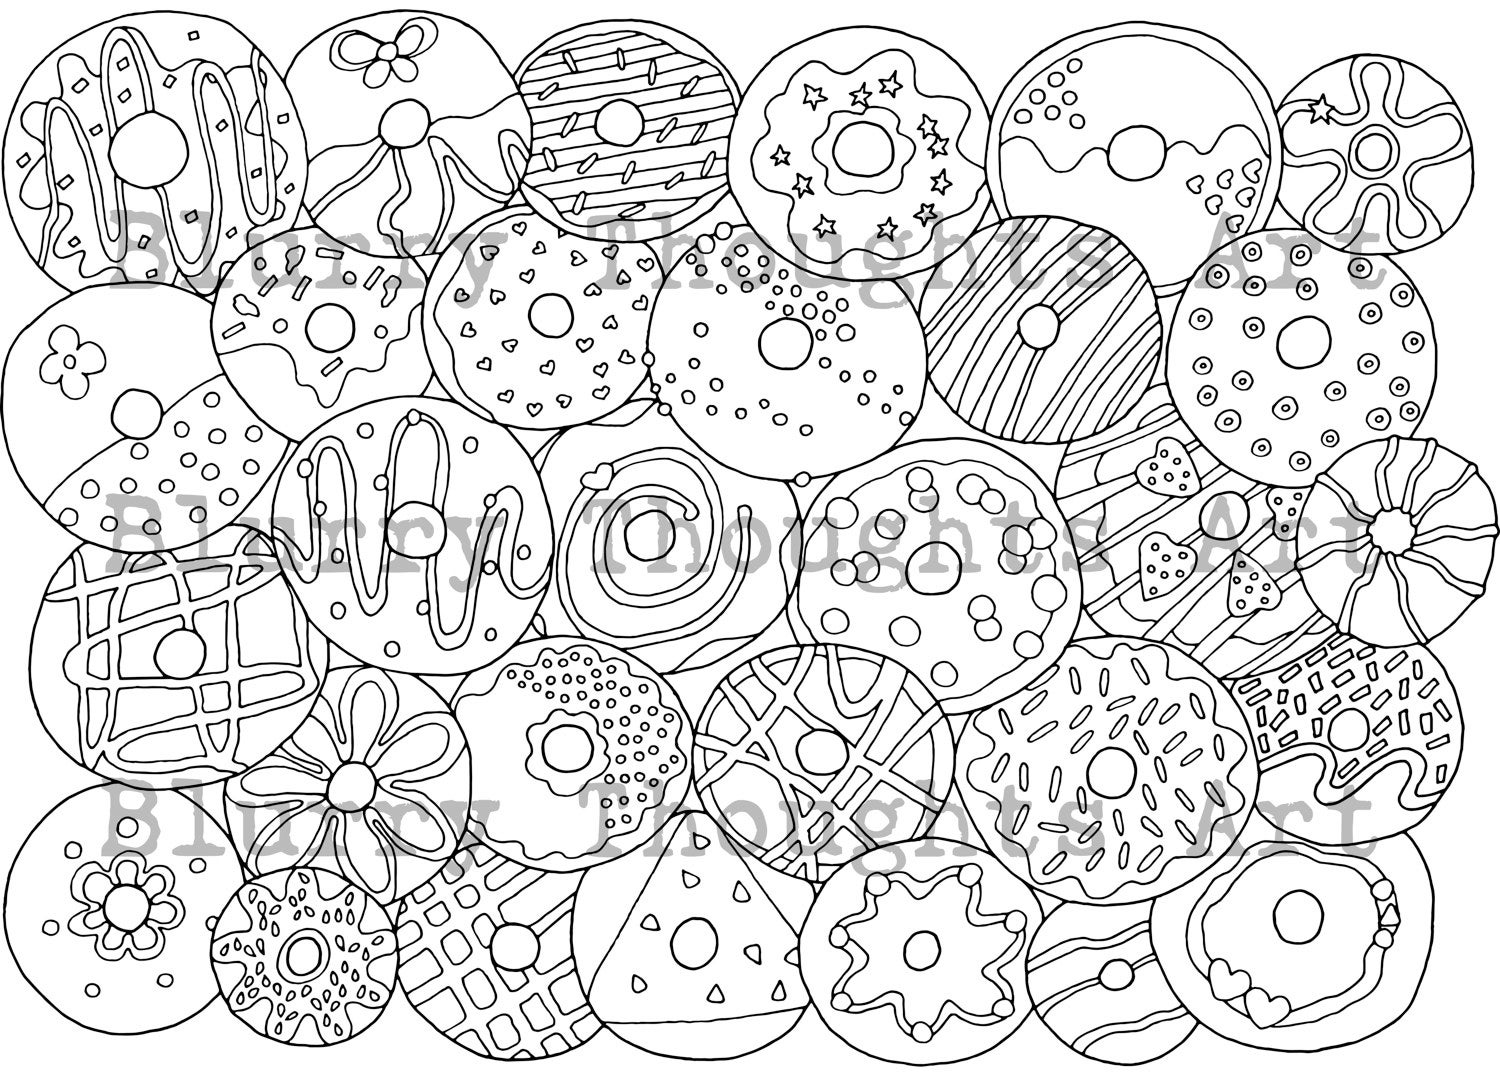 coloring sheet donut donut coloring pages best coloring pages for kids donut sheet coloring